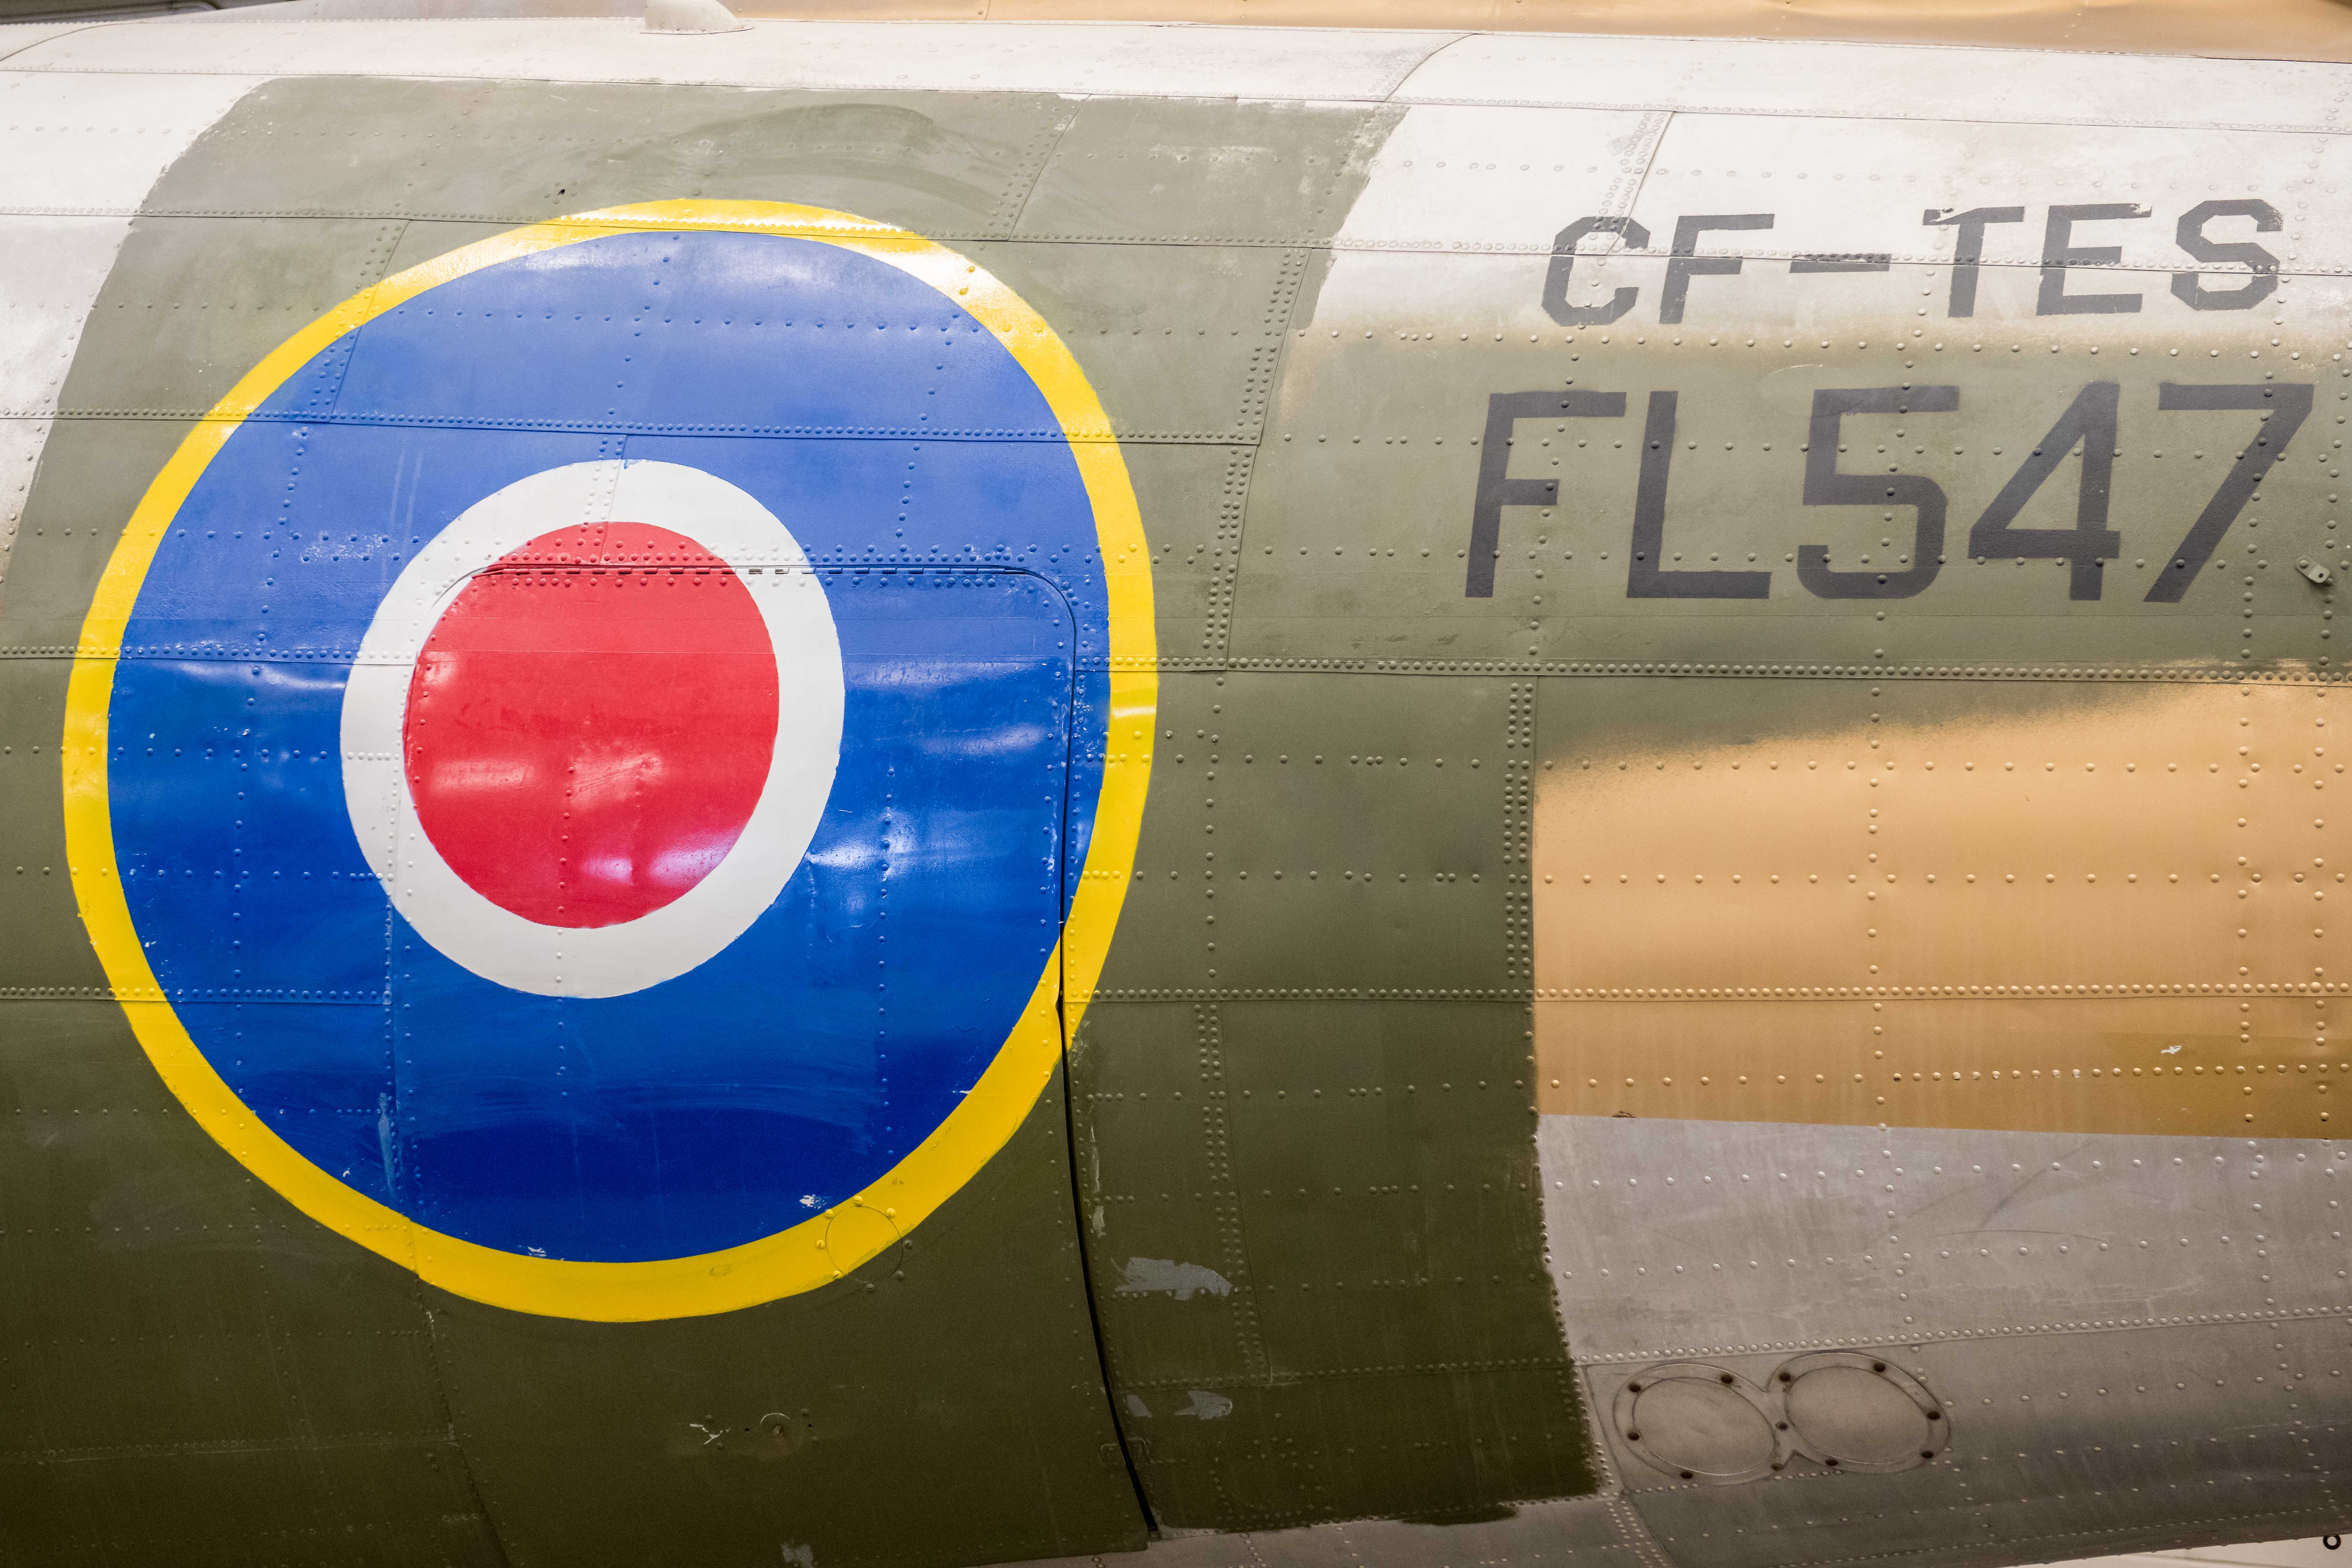 "The repainted roundel and aircraft markings on ""Spirit of Ostra Brama"" on March 4, 2019. The aircraft flew with the Royal Air Force with the registration number FL547 and, later, with Trans-Canada Airlines with the registration number CF-TES. PHOTO: Sergeant Daren Kraus, FW2019-0010-32"